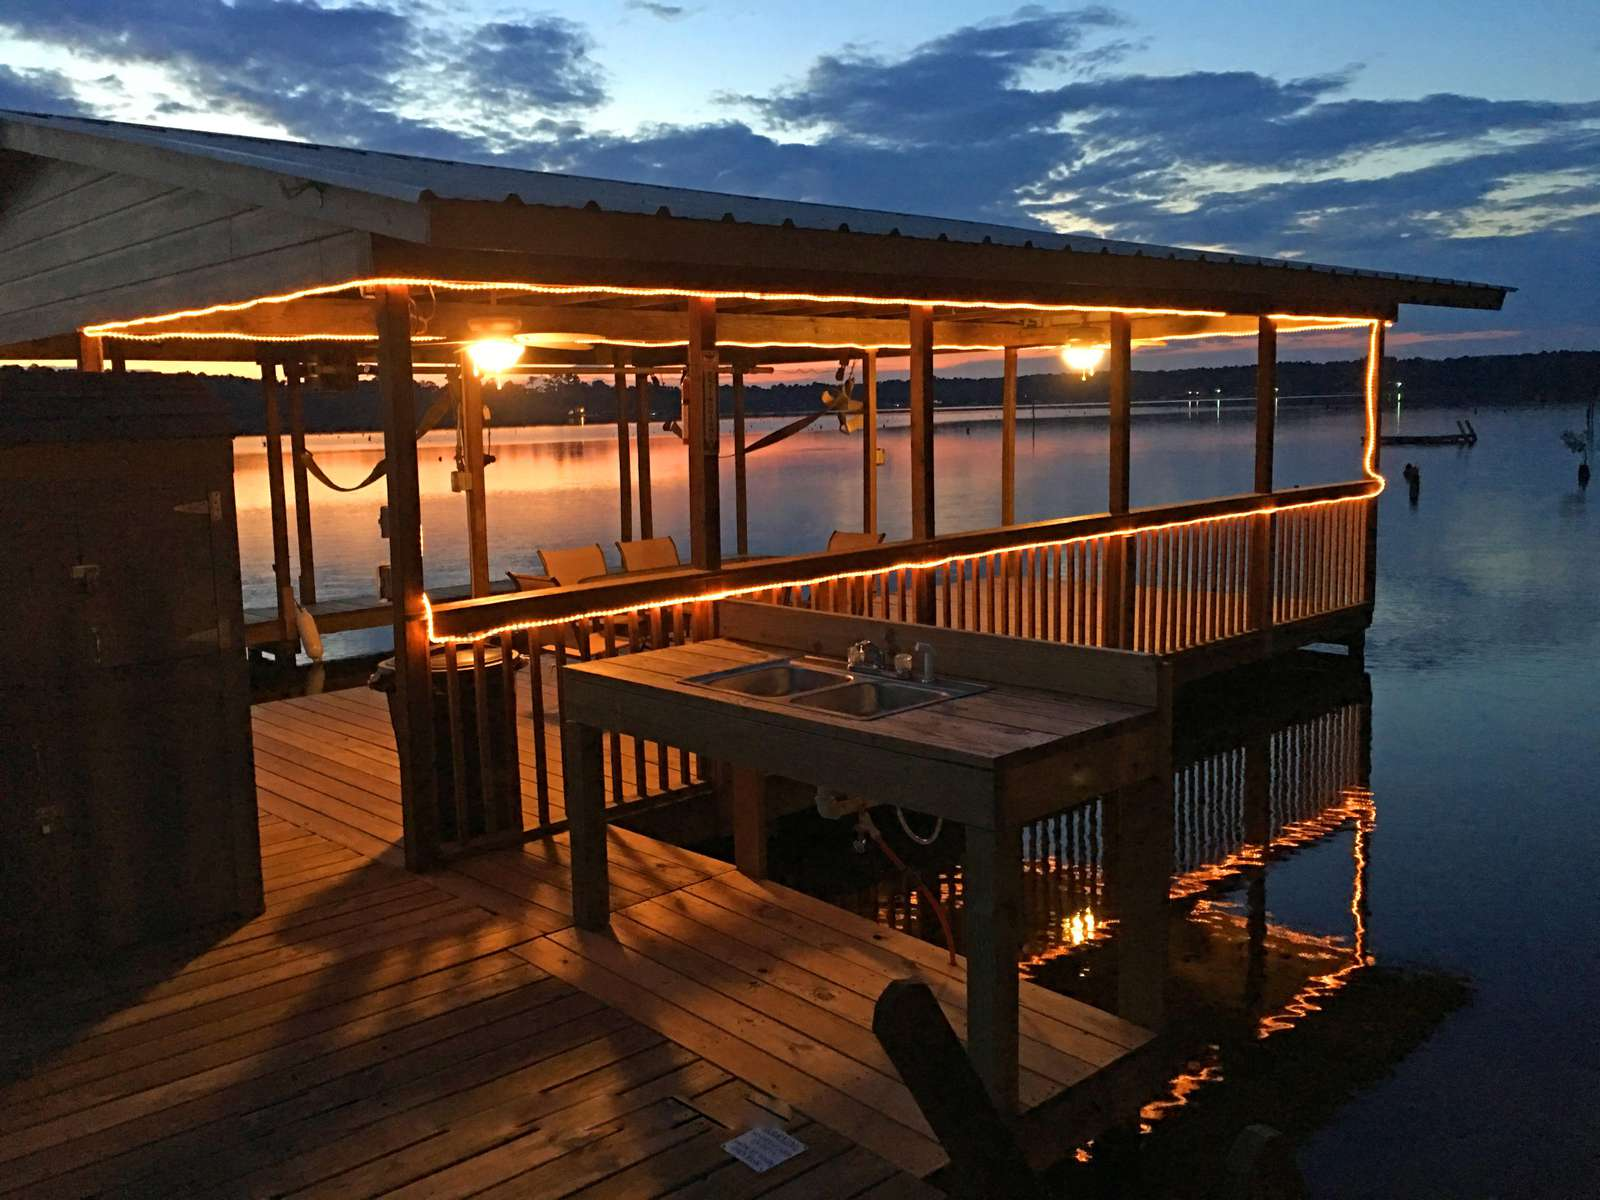 The sitting area on the dock is a great place to gather.